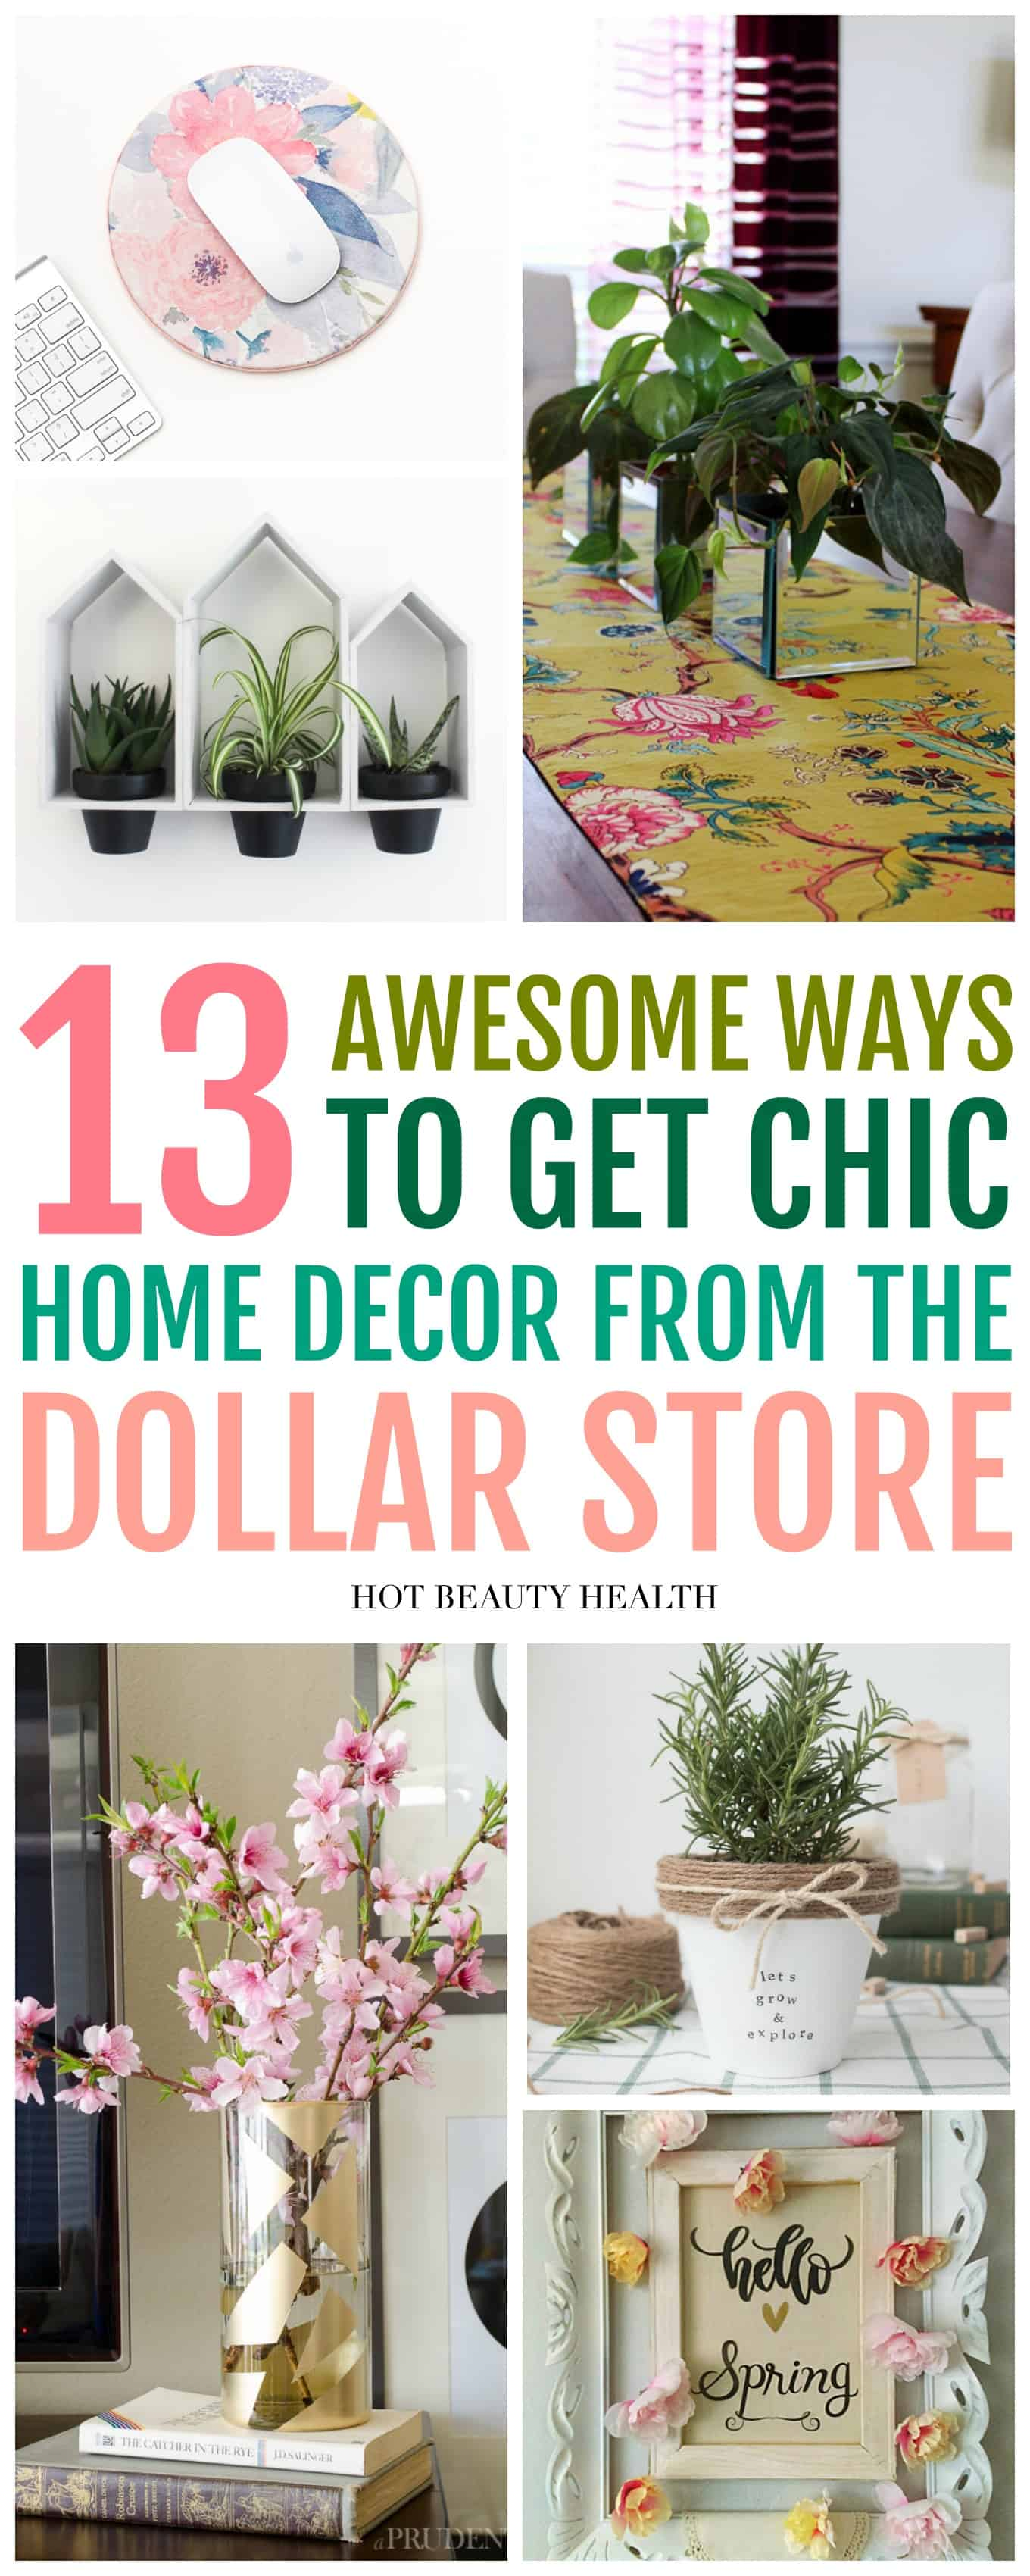 Best 13 Dollar Store Home Decor Ideas You Ll Love Hot Beauty This Month